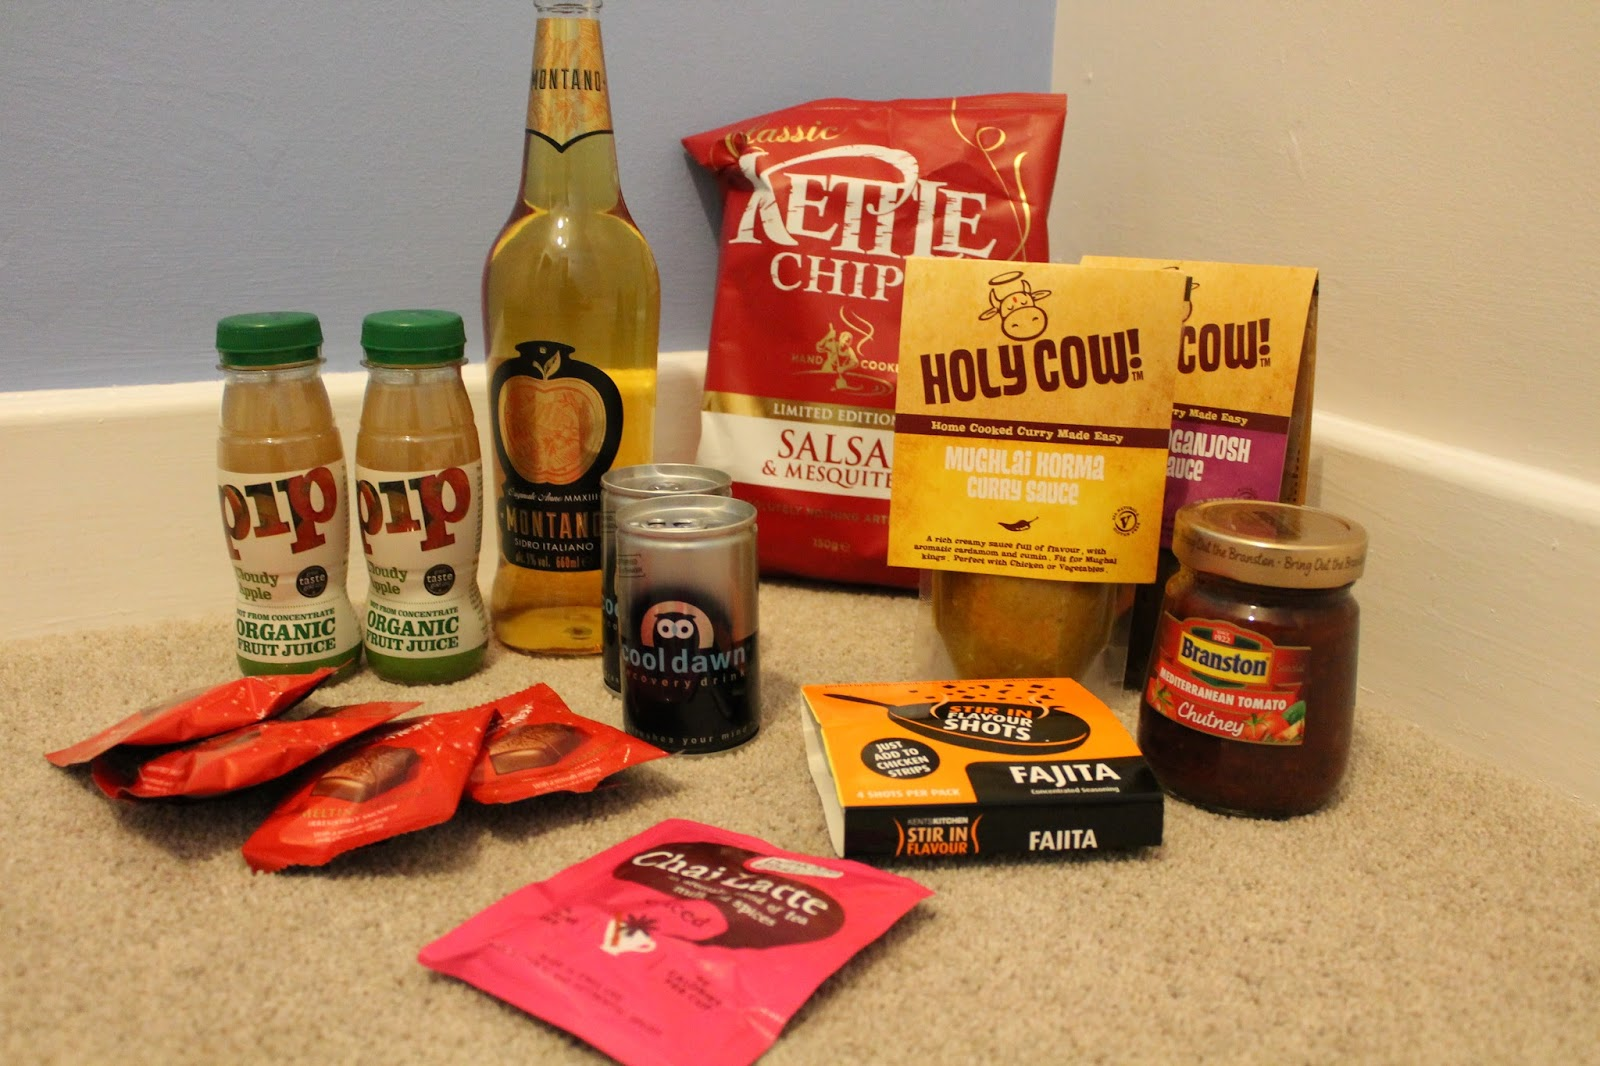 Degustabox UK November 2014 Monthly Subscription Box Contents